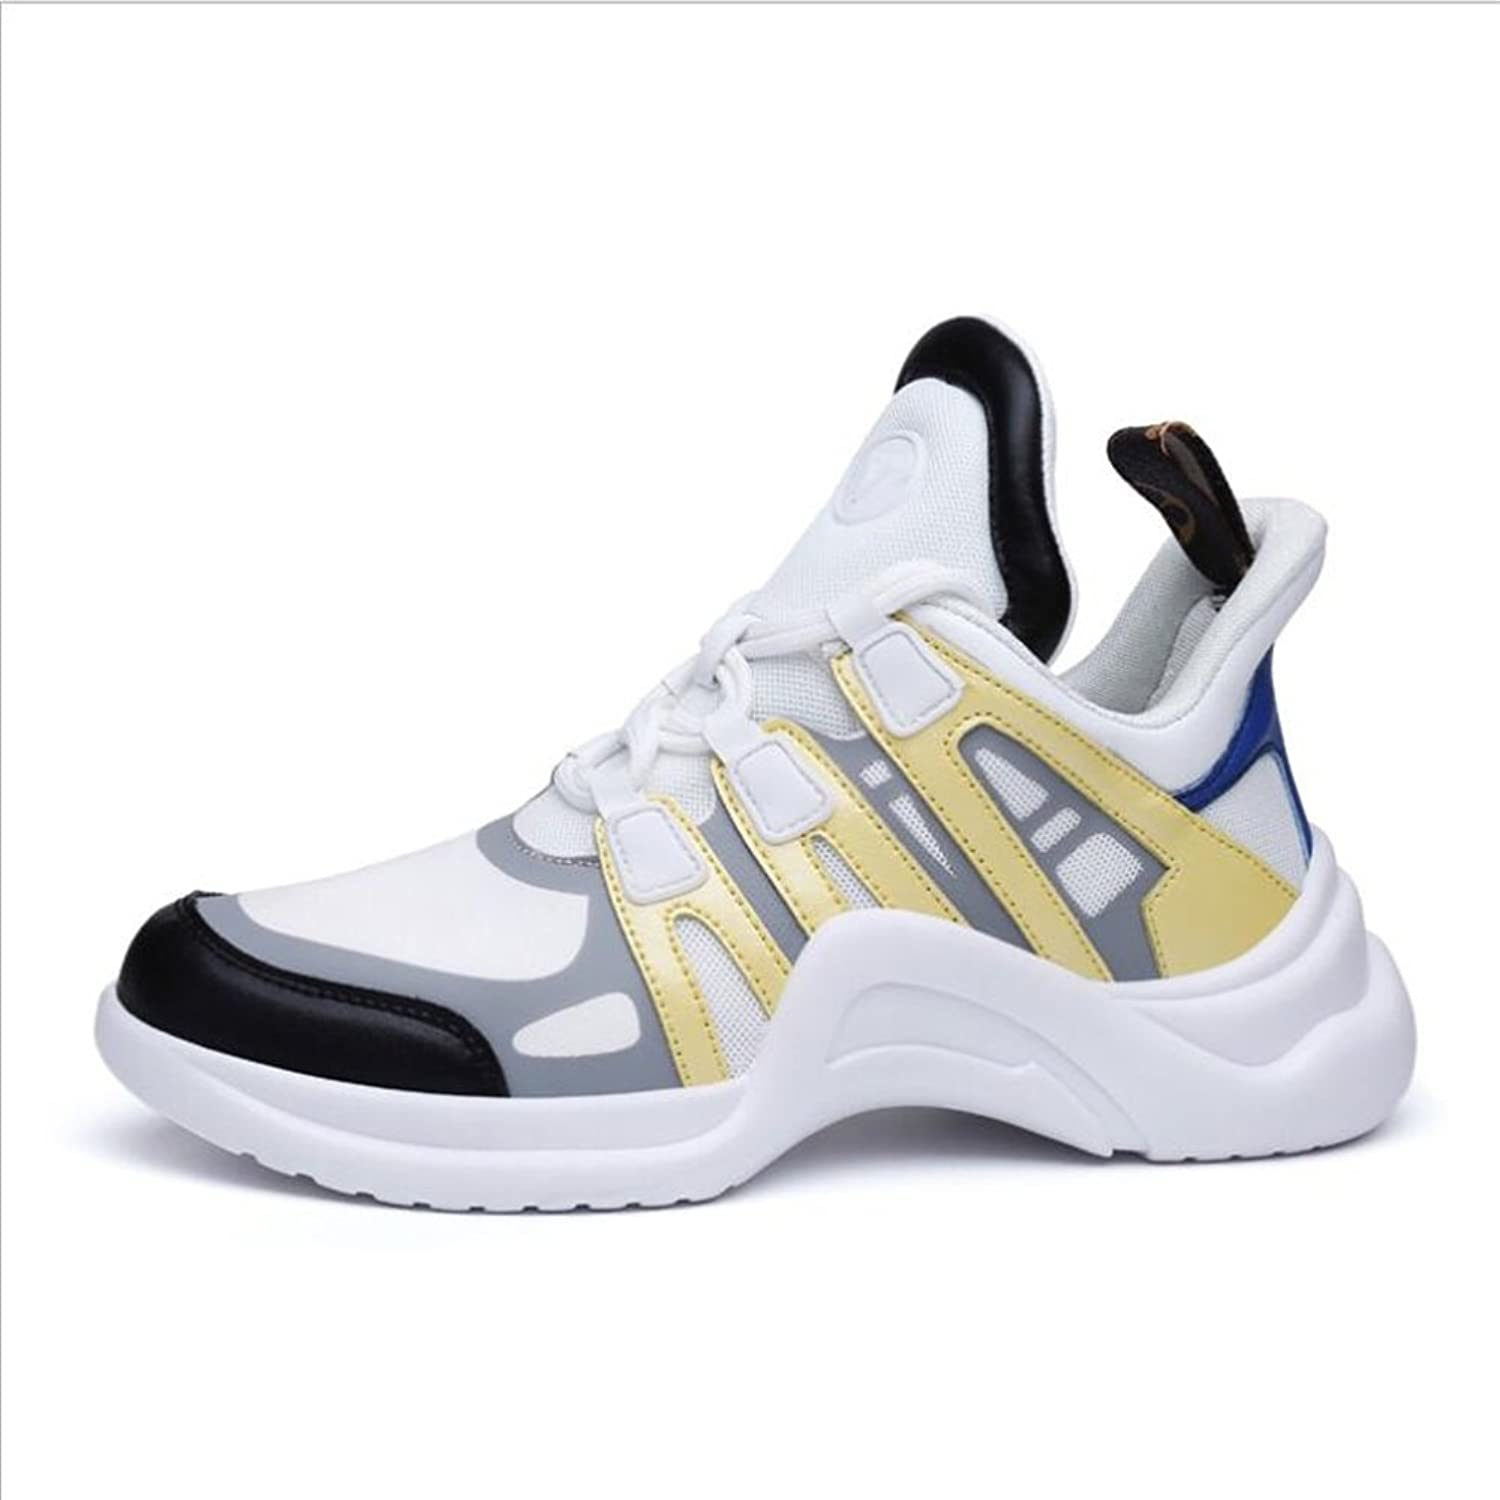 Womens's shoes 2018 New Spring Fall shoes,Womens Athletic Casual shoes,Fashion Breathable Small White shoes